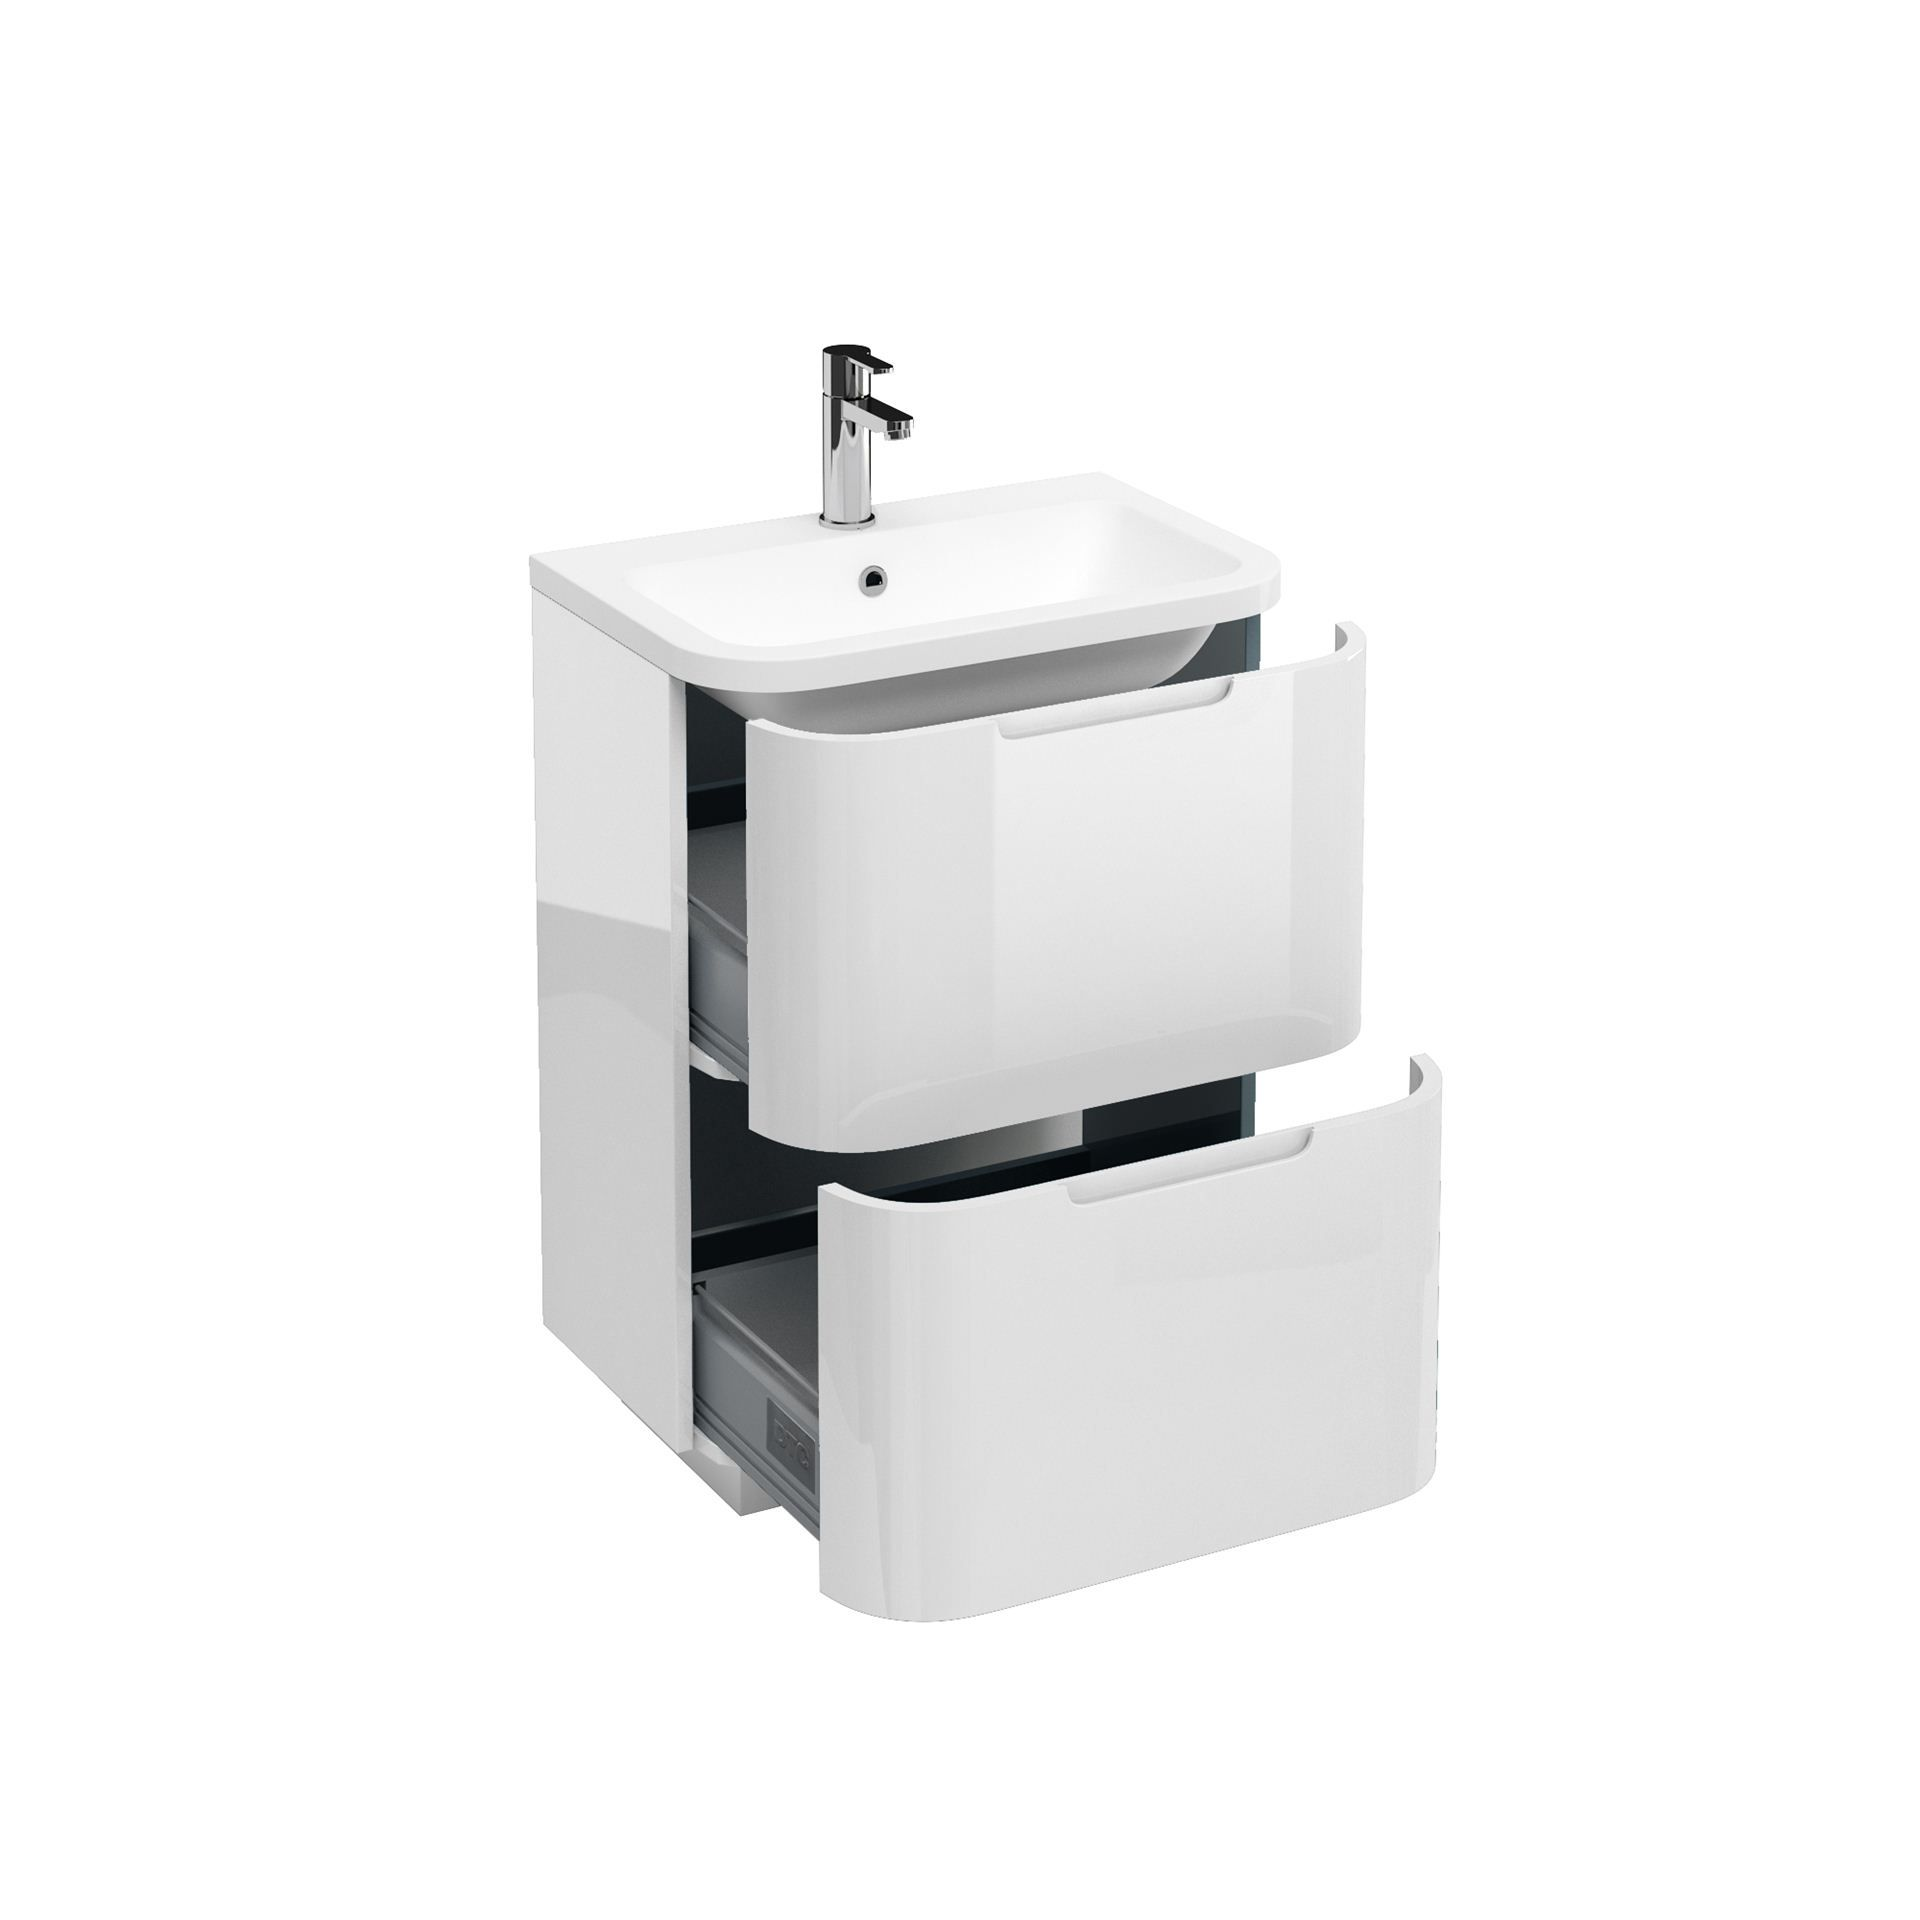 small vanity unit with sink. Aqua Cabinets Compact Vanity Unit With A Quattrocast BasinThis  Floorstanding Design Its Basin Cutout Really Makes An Impact 600mm Floor Standing Unit White Ex